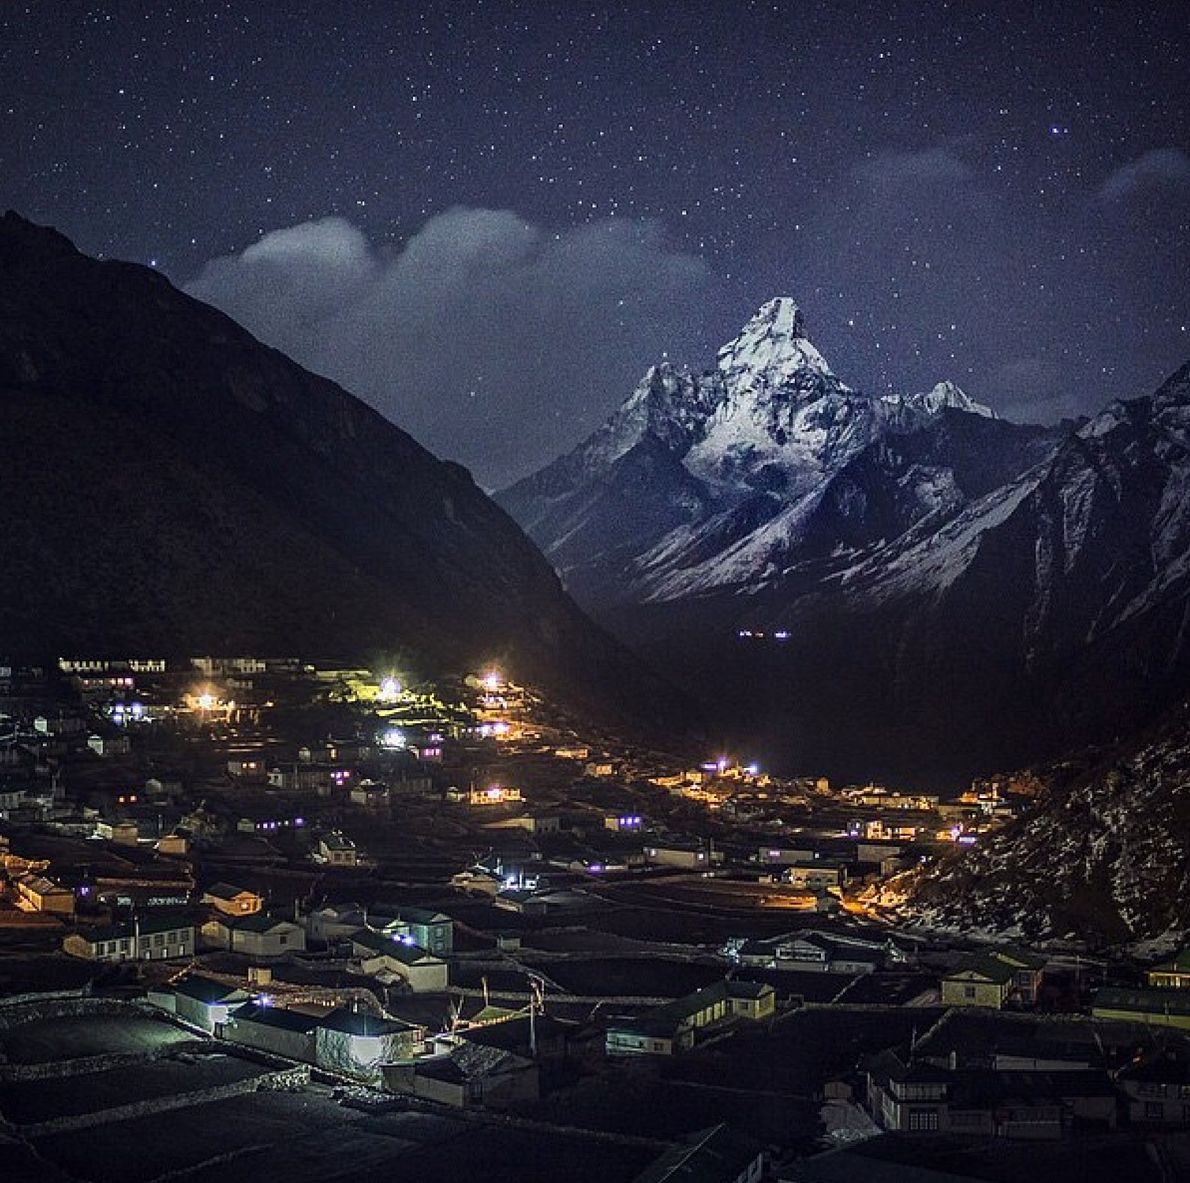 """""""Khumjung is the idyllic Sherpa cultural capital of the Everest region. This is the gateway to ..."""